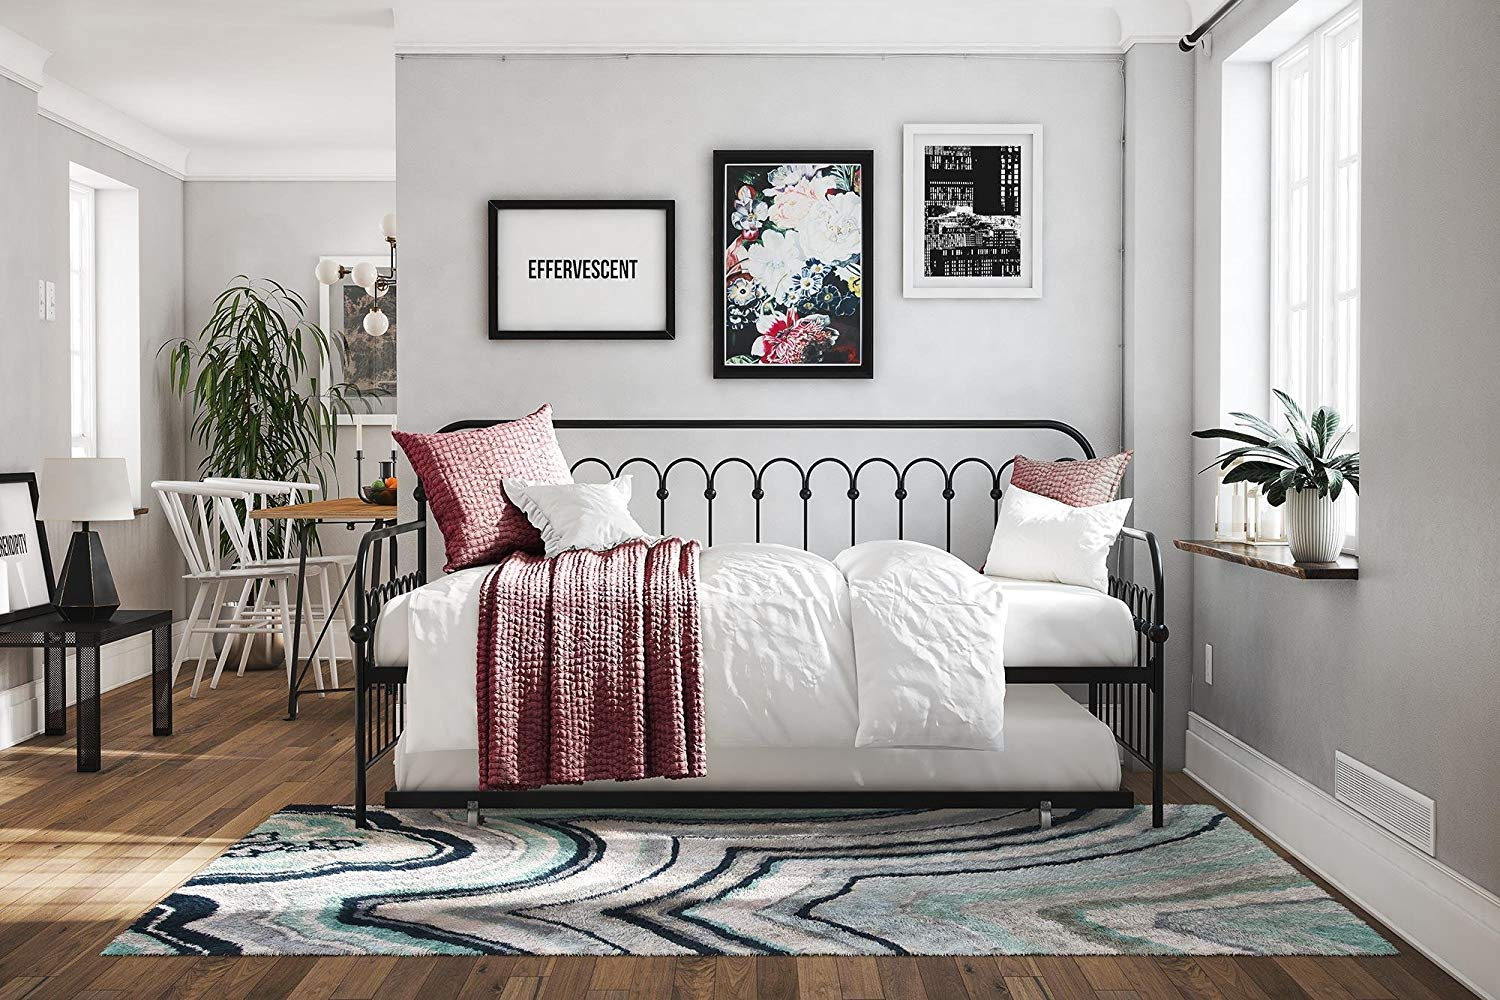 Picture of: 51 Daybeds That Bring Style To Multipurpose Design